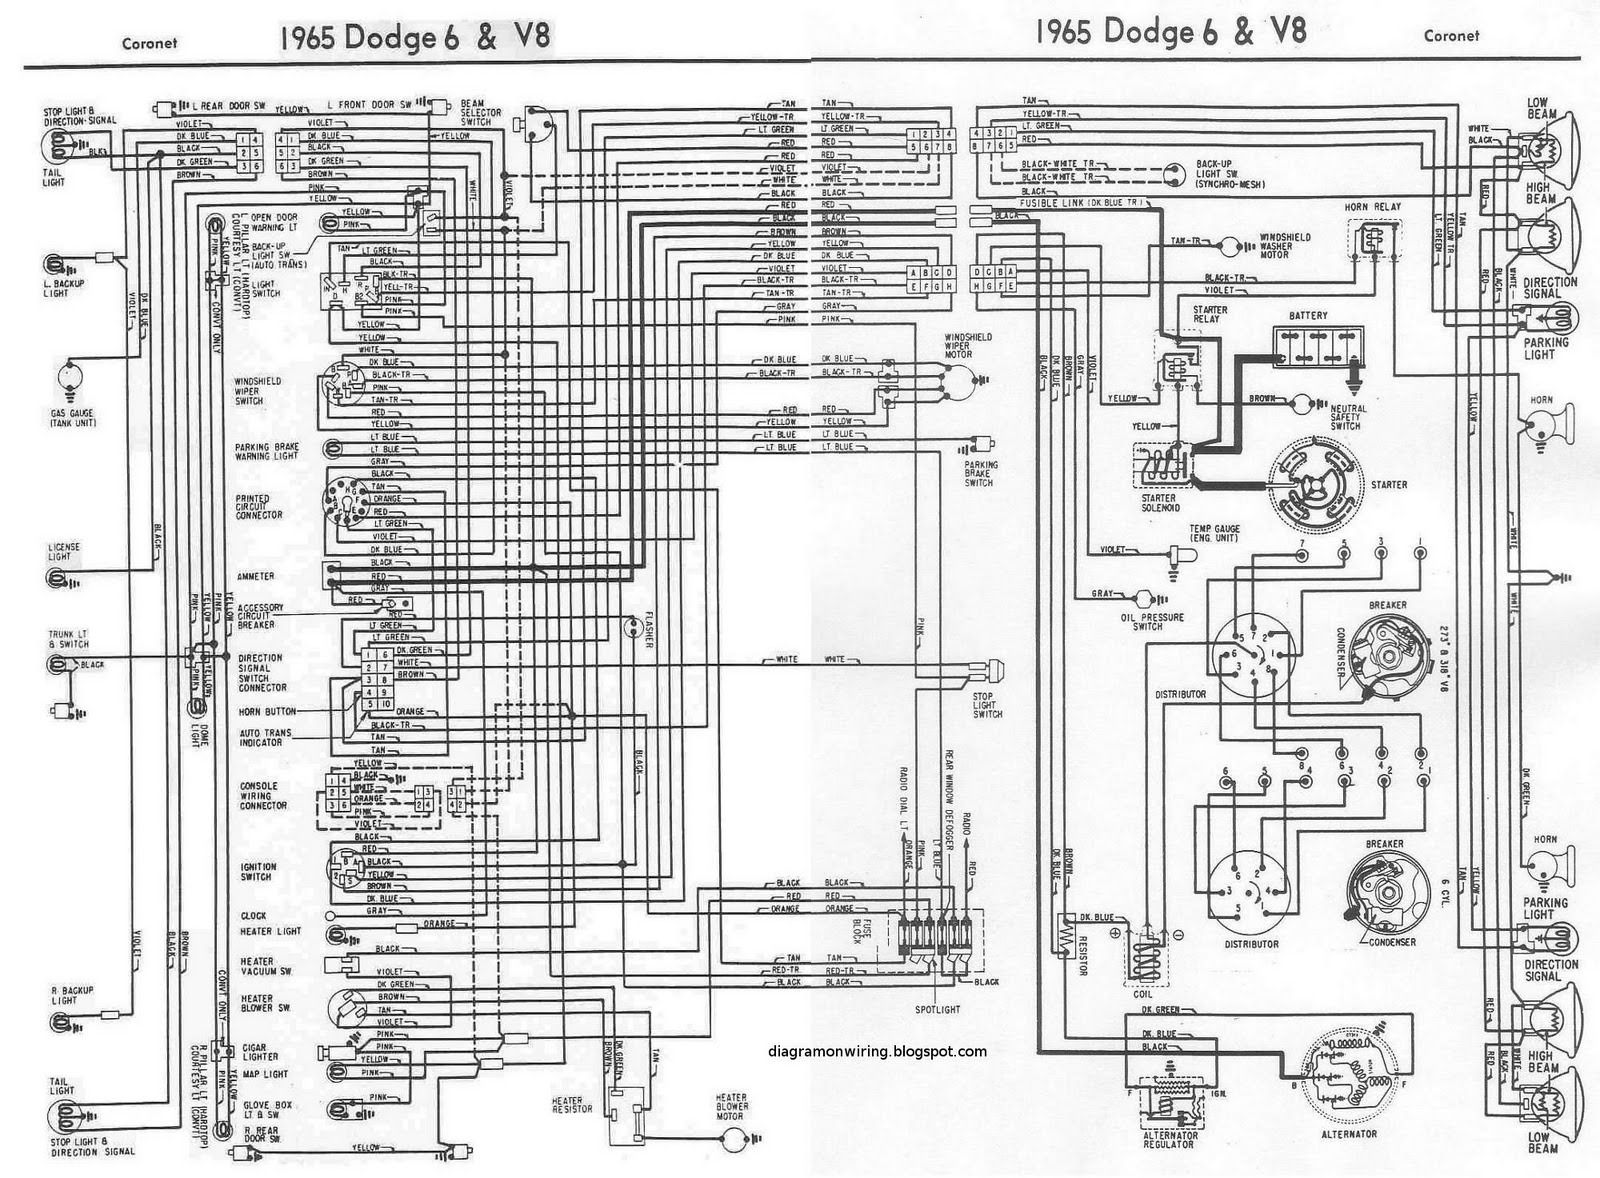 small resolution of dodge alternator wiring 1965 electrical wiring diagram1967 dodge alternator wiring wiring diagram repair guides1966 plymouth alternator